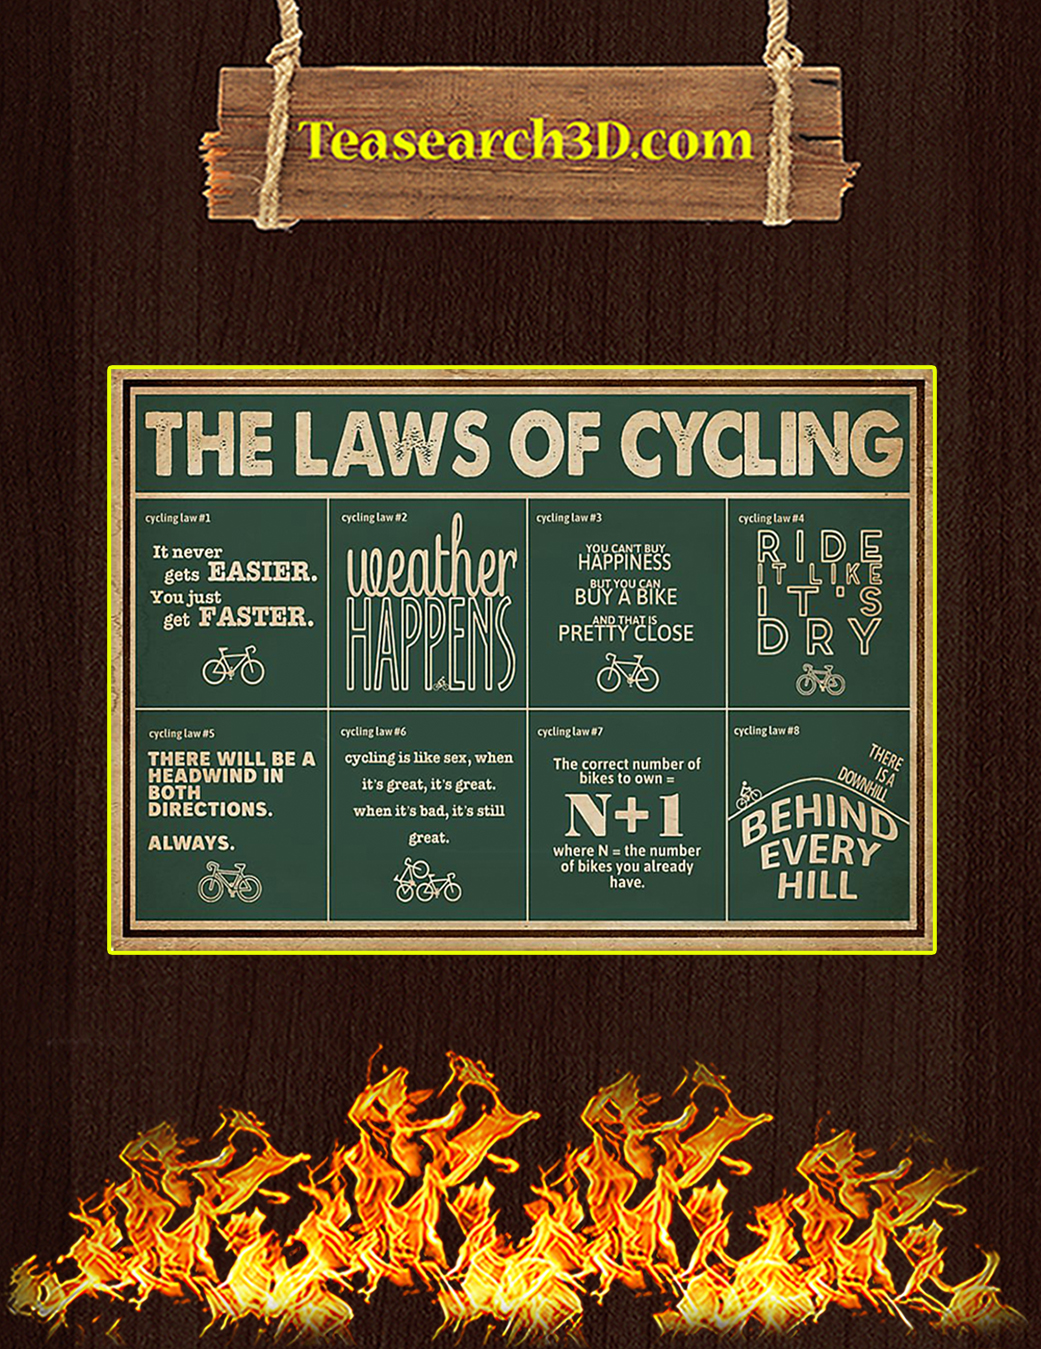 The laws of cycling poster A1